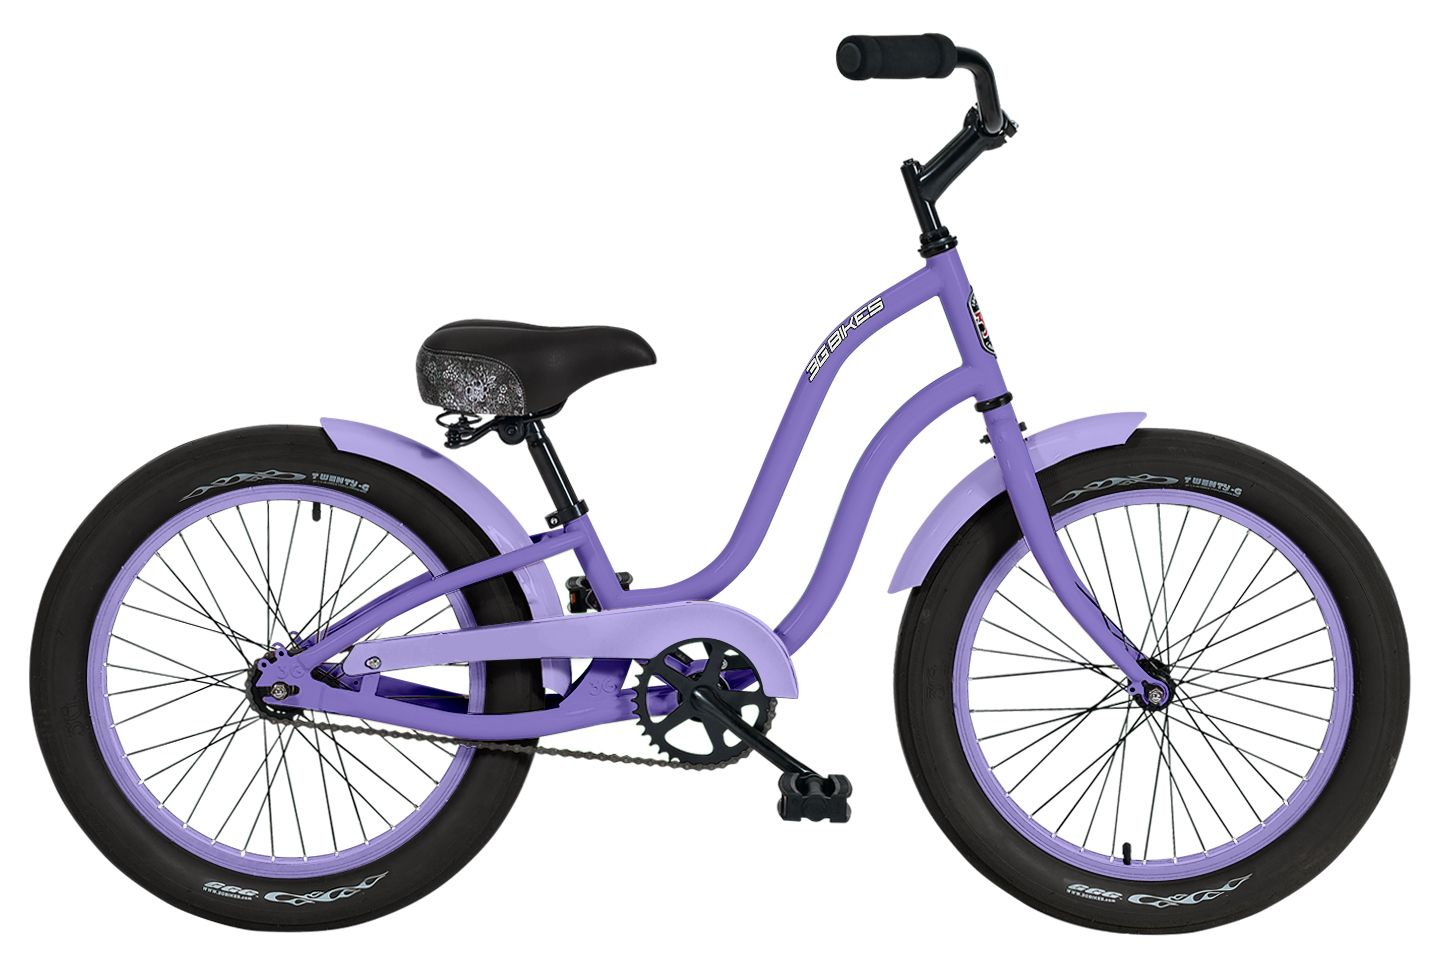 3g Bikes Candy 20 S Beach Bicycle In Purple With Soft Rims And Fenders